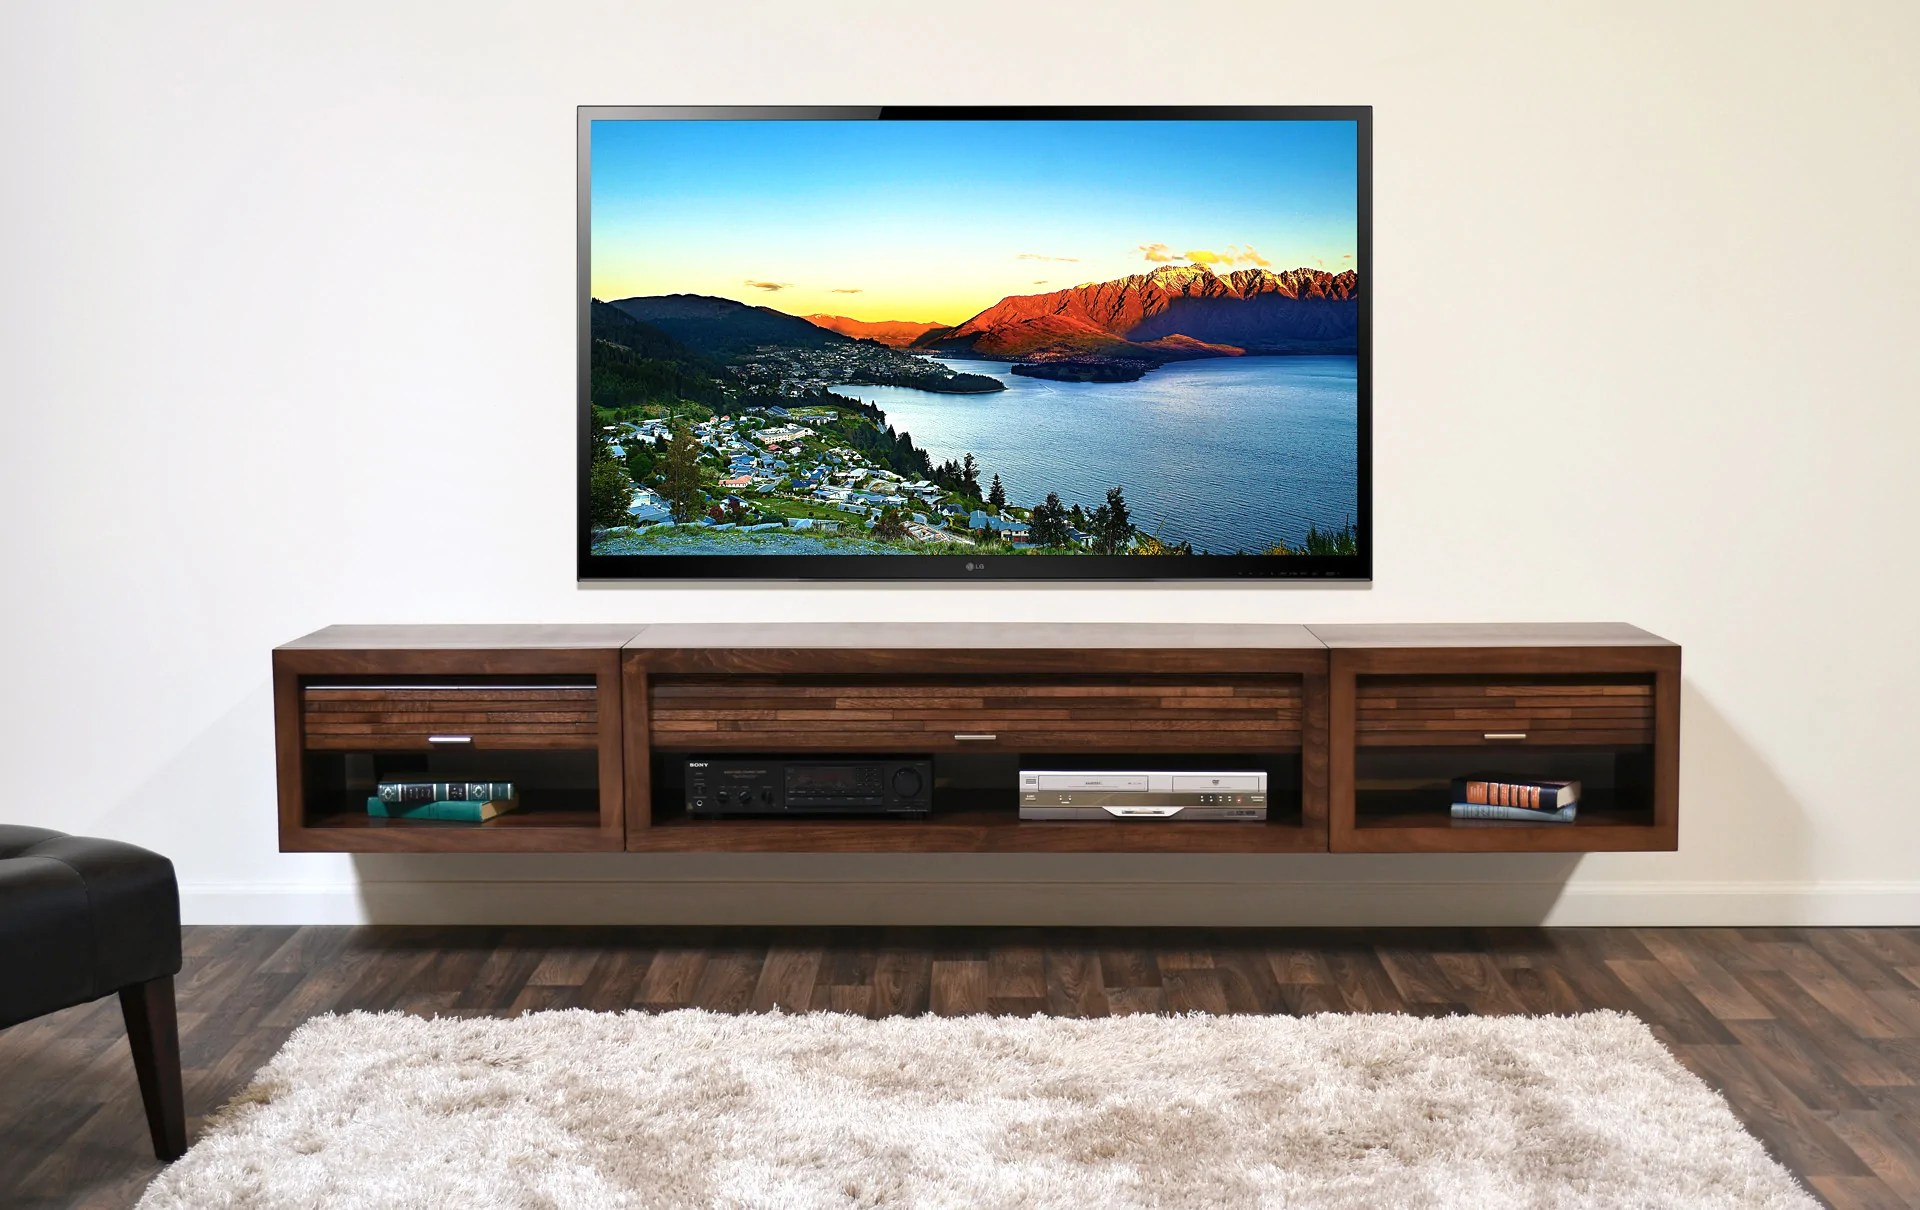 Famed Sale Wall Entertainment Center Wall Mounted Floating Tv Stand Entertainment Center Eco Geo Mocha Floating Tv Stand Entertainment Center Eco Geo Espresso Woodwaves Wall Entertainment Centers houzz-02 Wall Entertainment Center